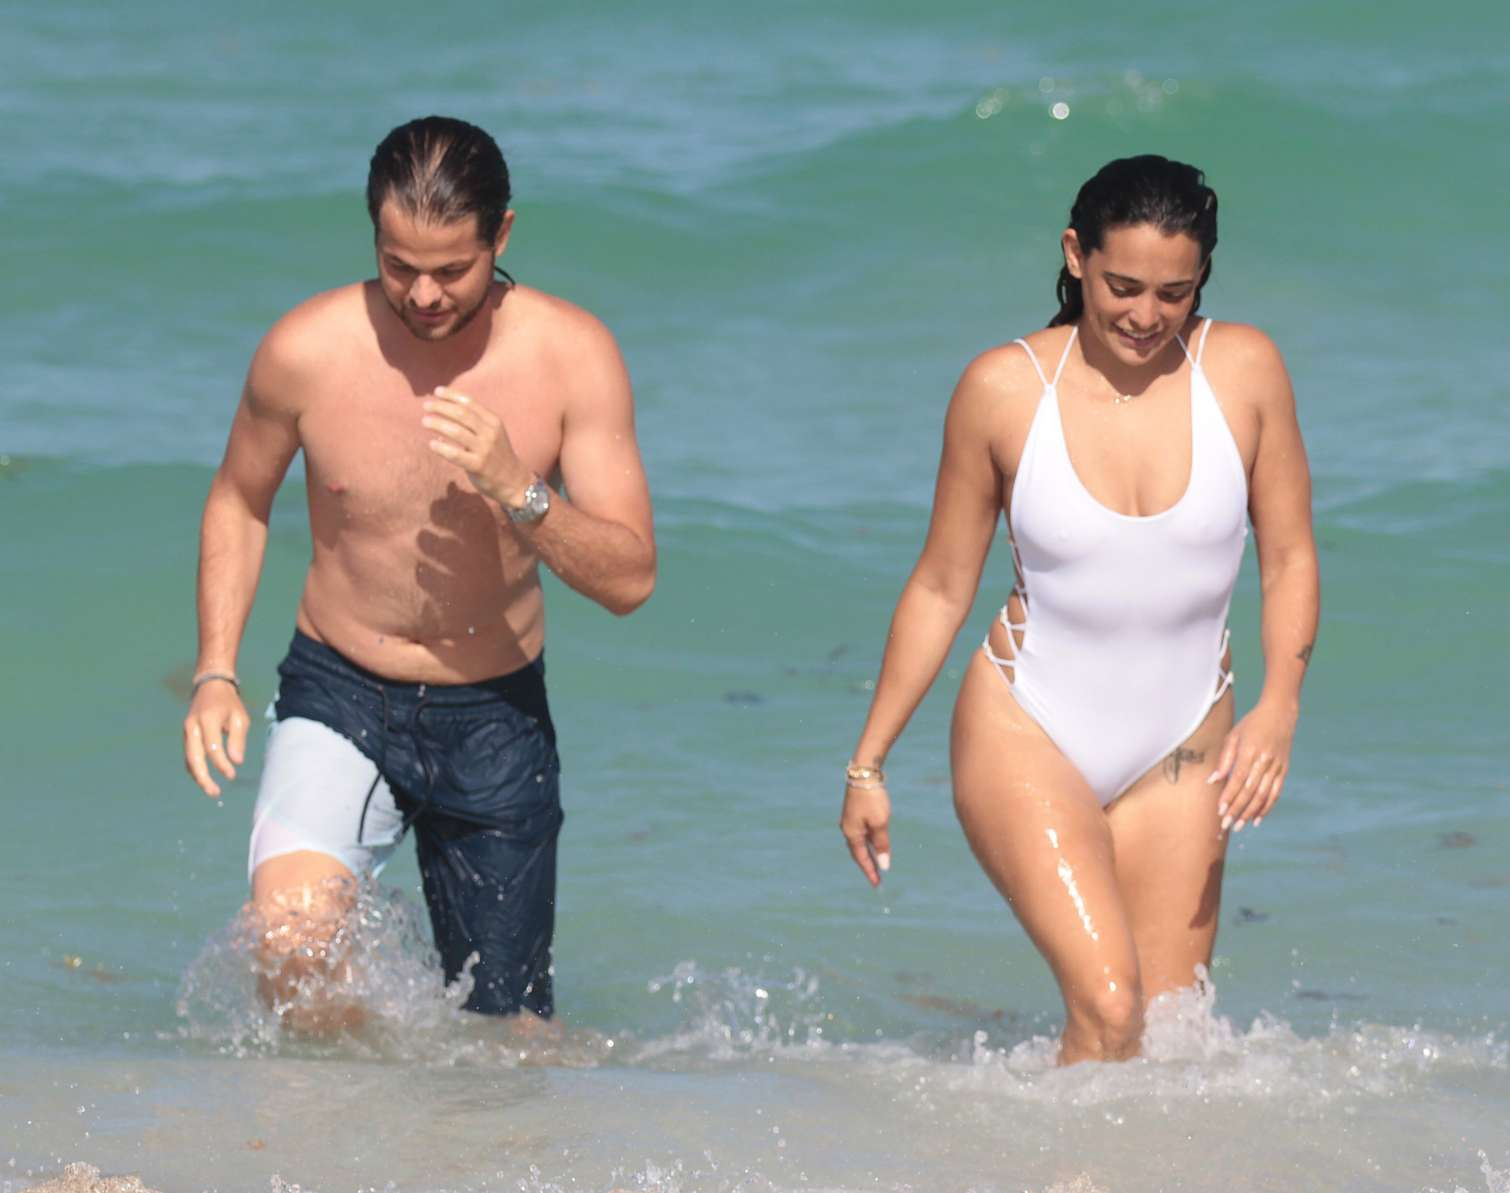 pictures Natalie martinez shows off her swimsuit body in miami beach